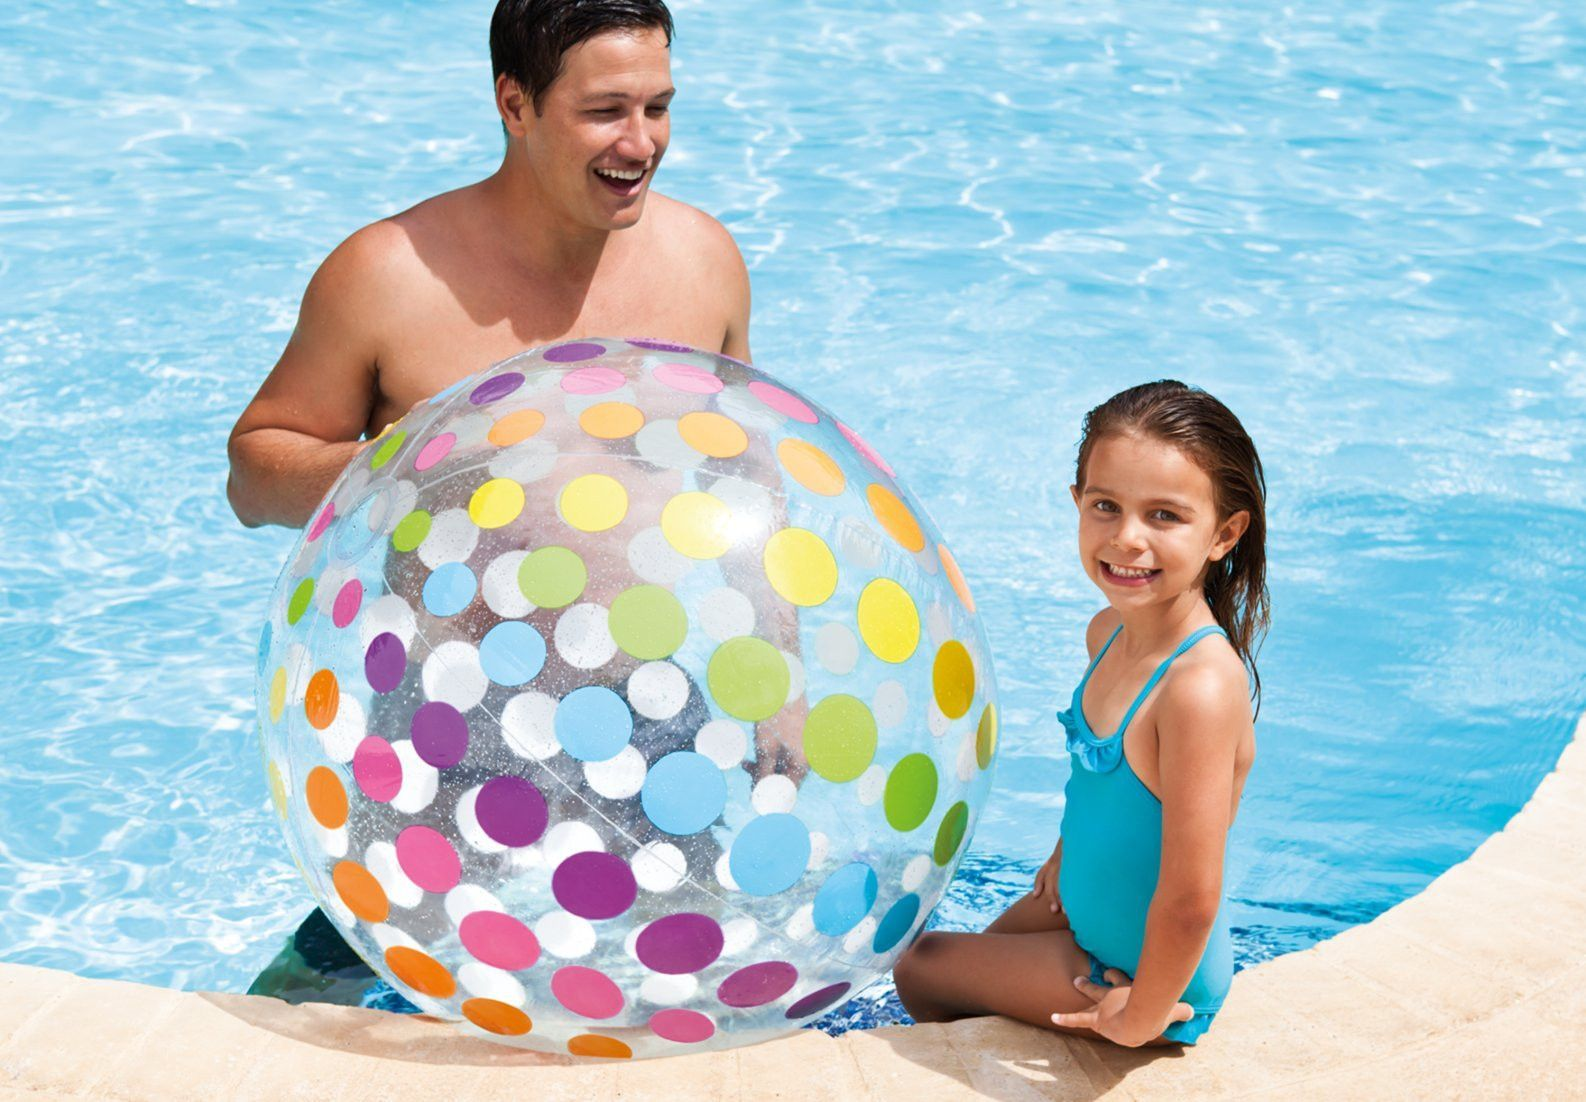 42 Jumbo Beach Ball The Jumbo Beach Ball Has An Inflated Size Of Approximately 42 107cm Diameter Constructed Of 10 Gauge 0 Beach Ball Pool Beach Party